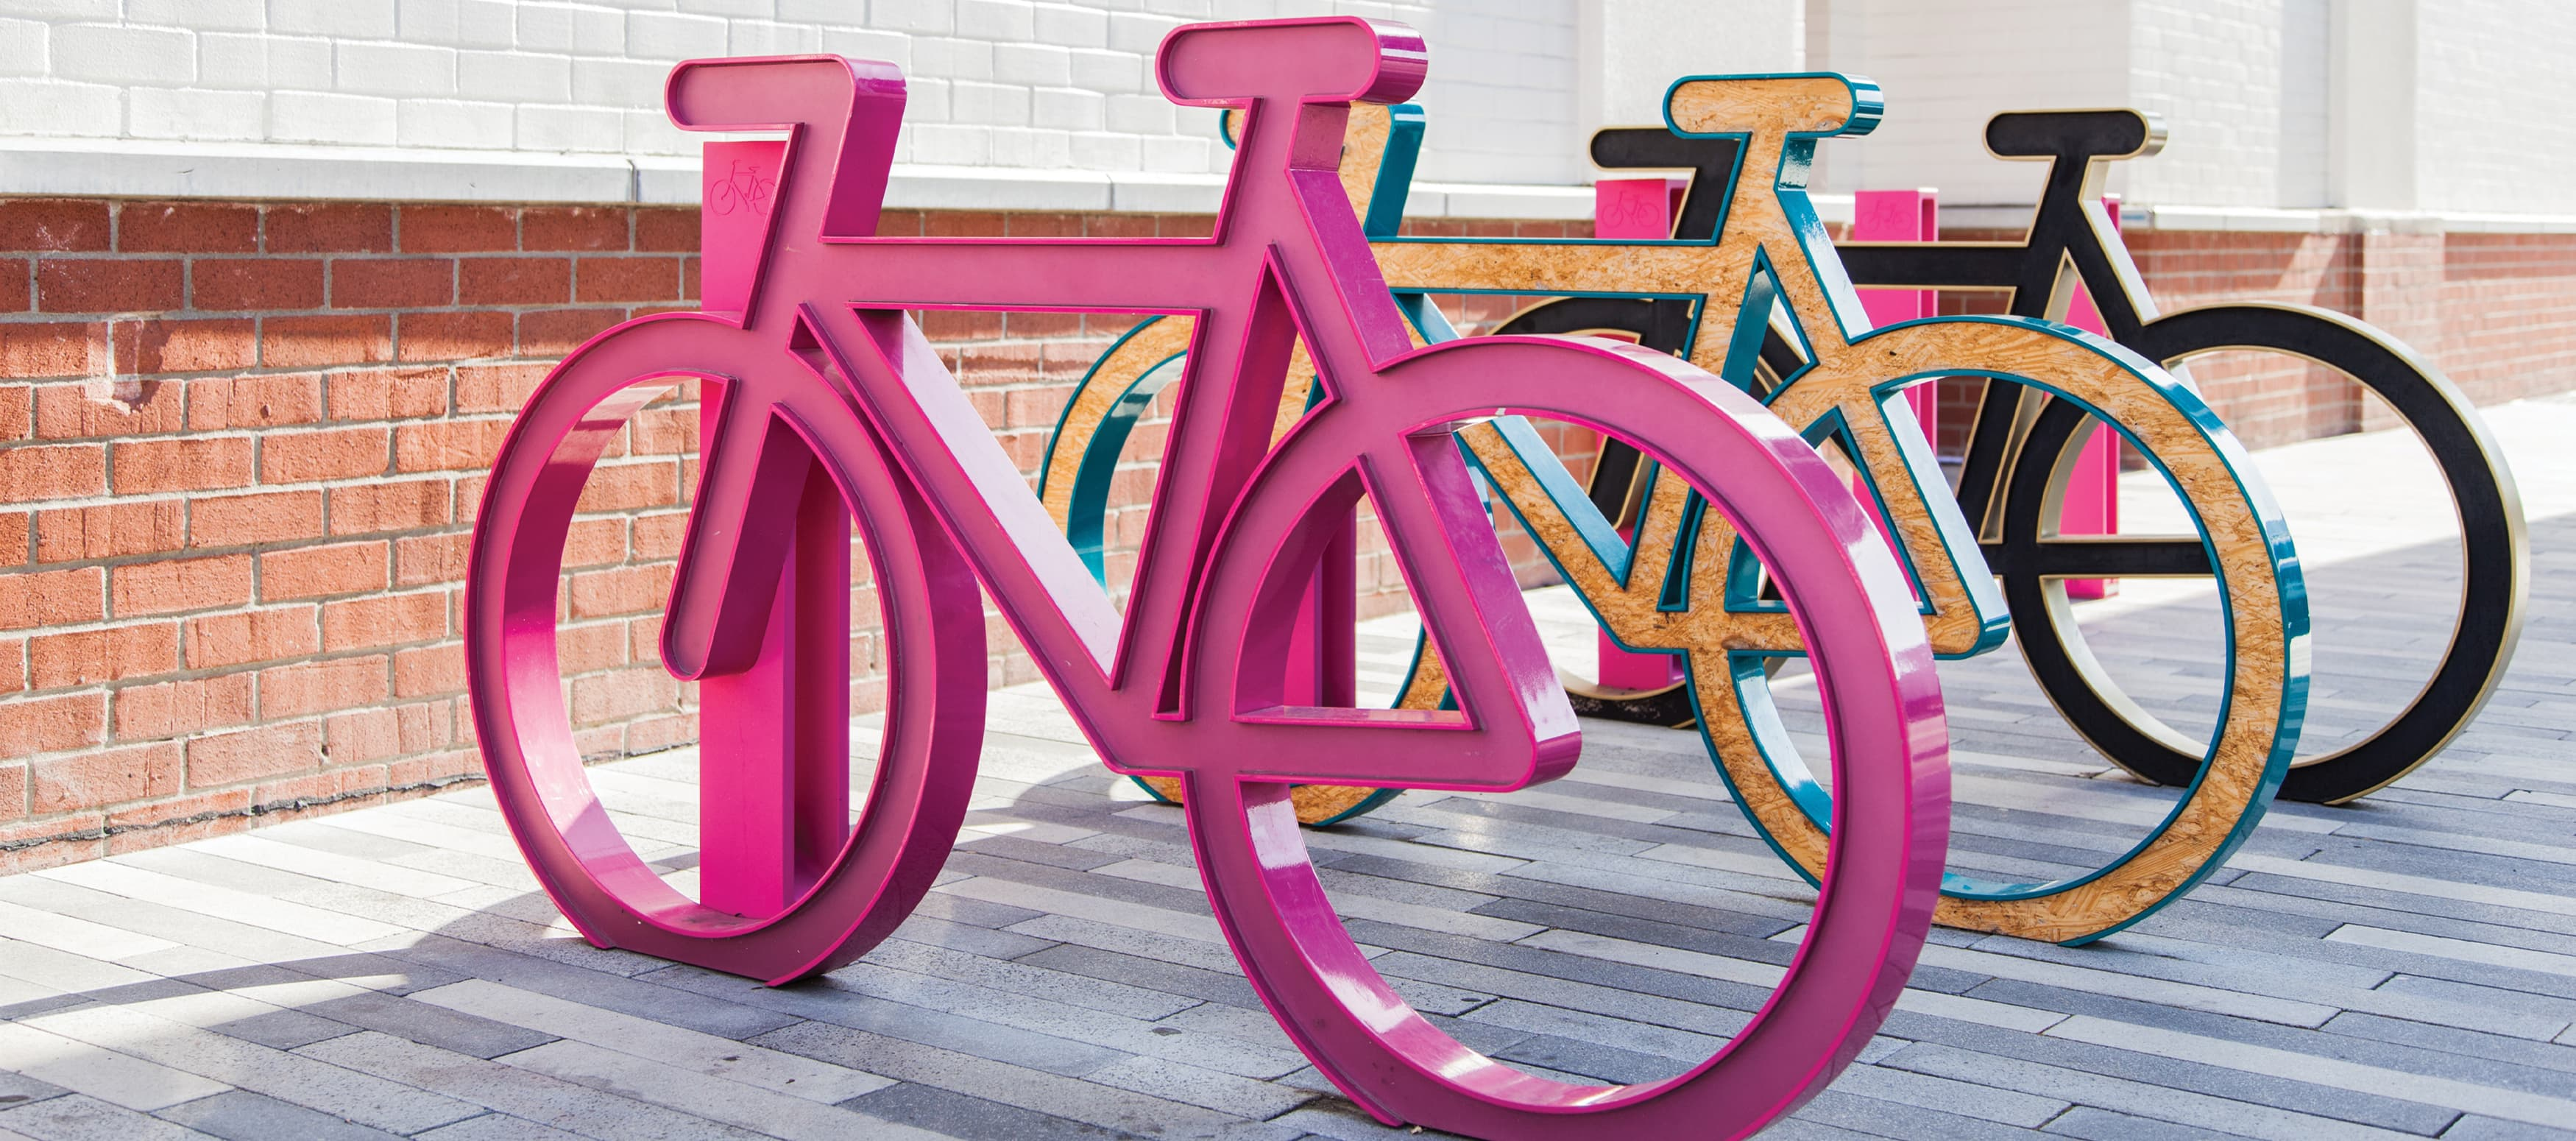 A fun pink and colorful bike rack